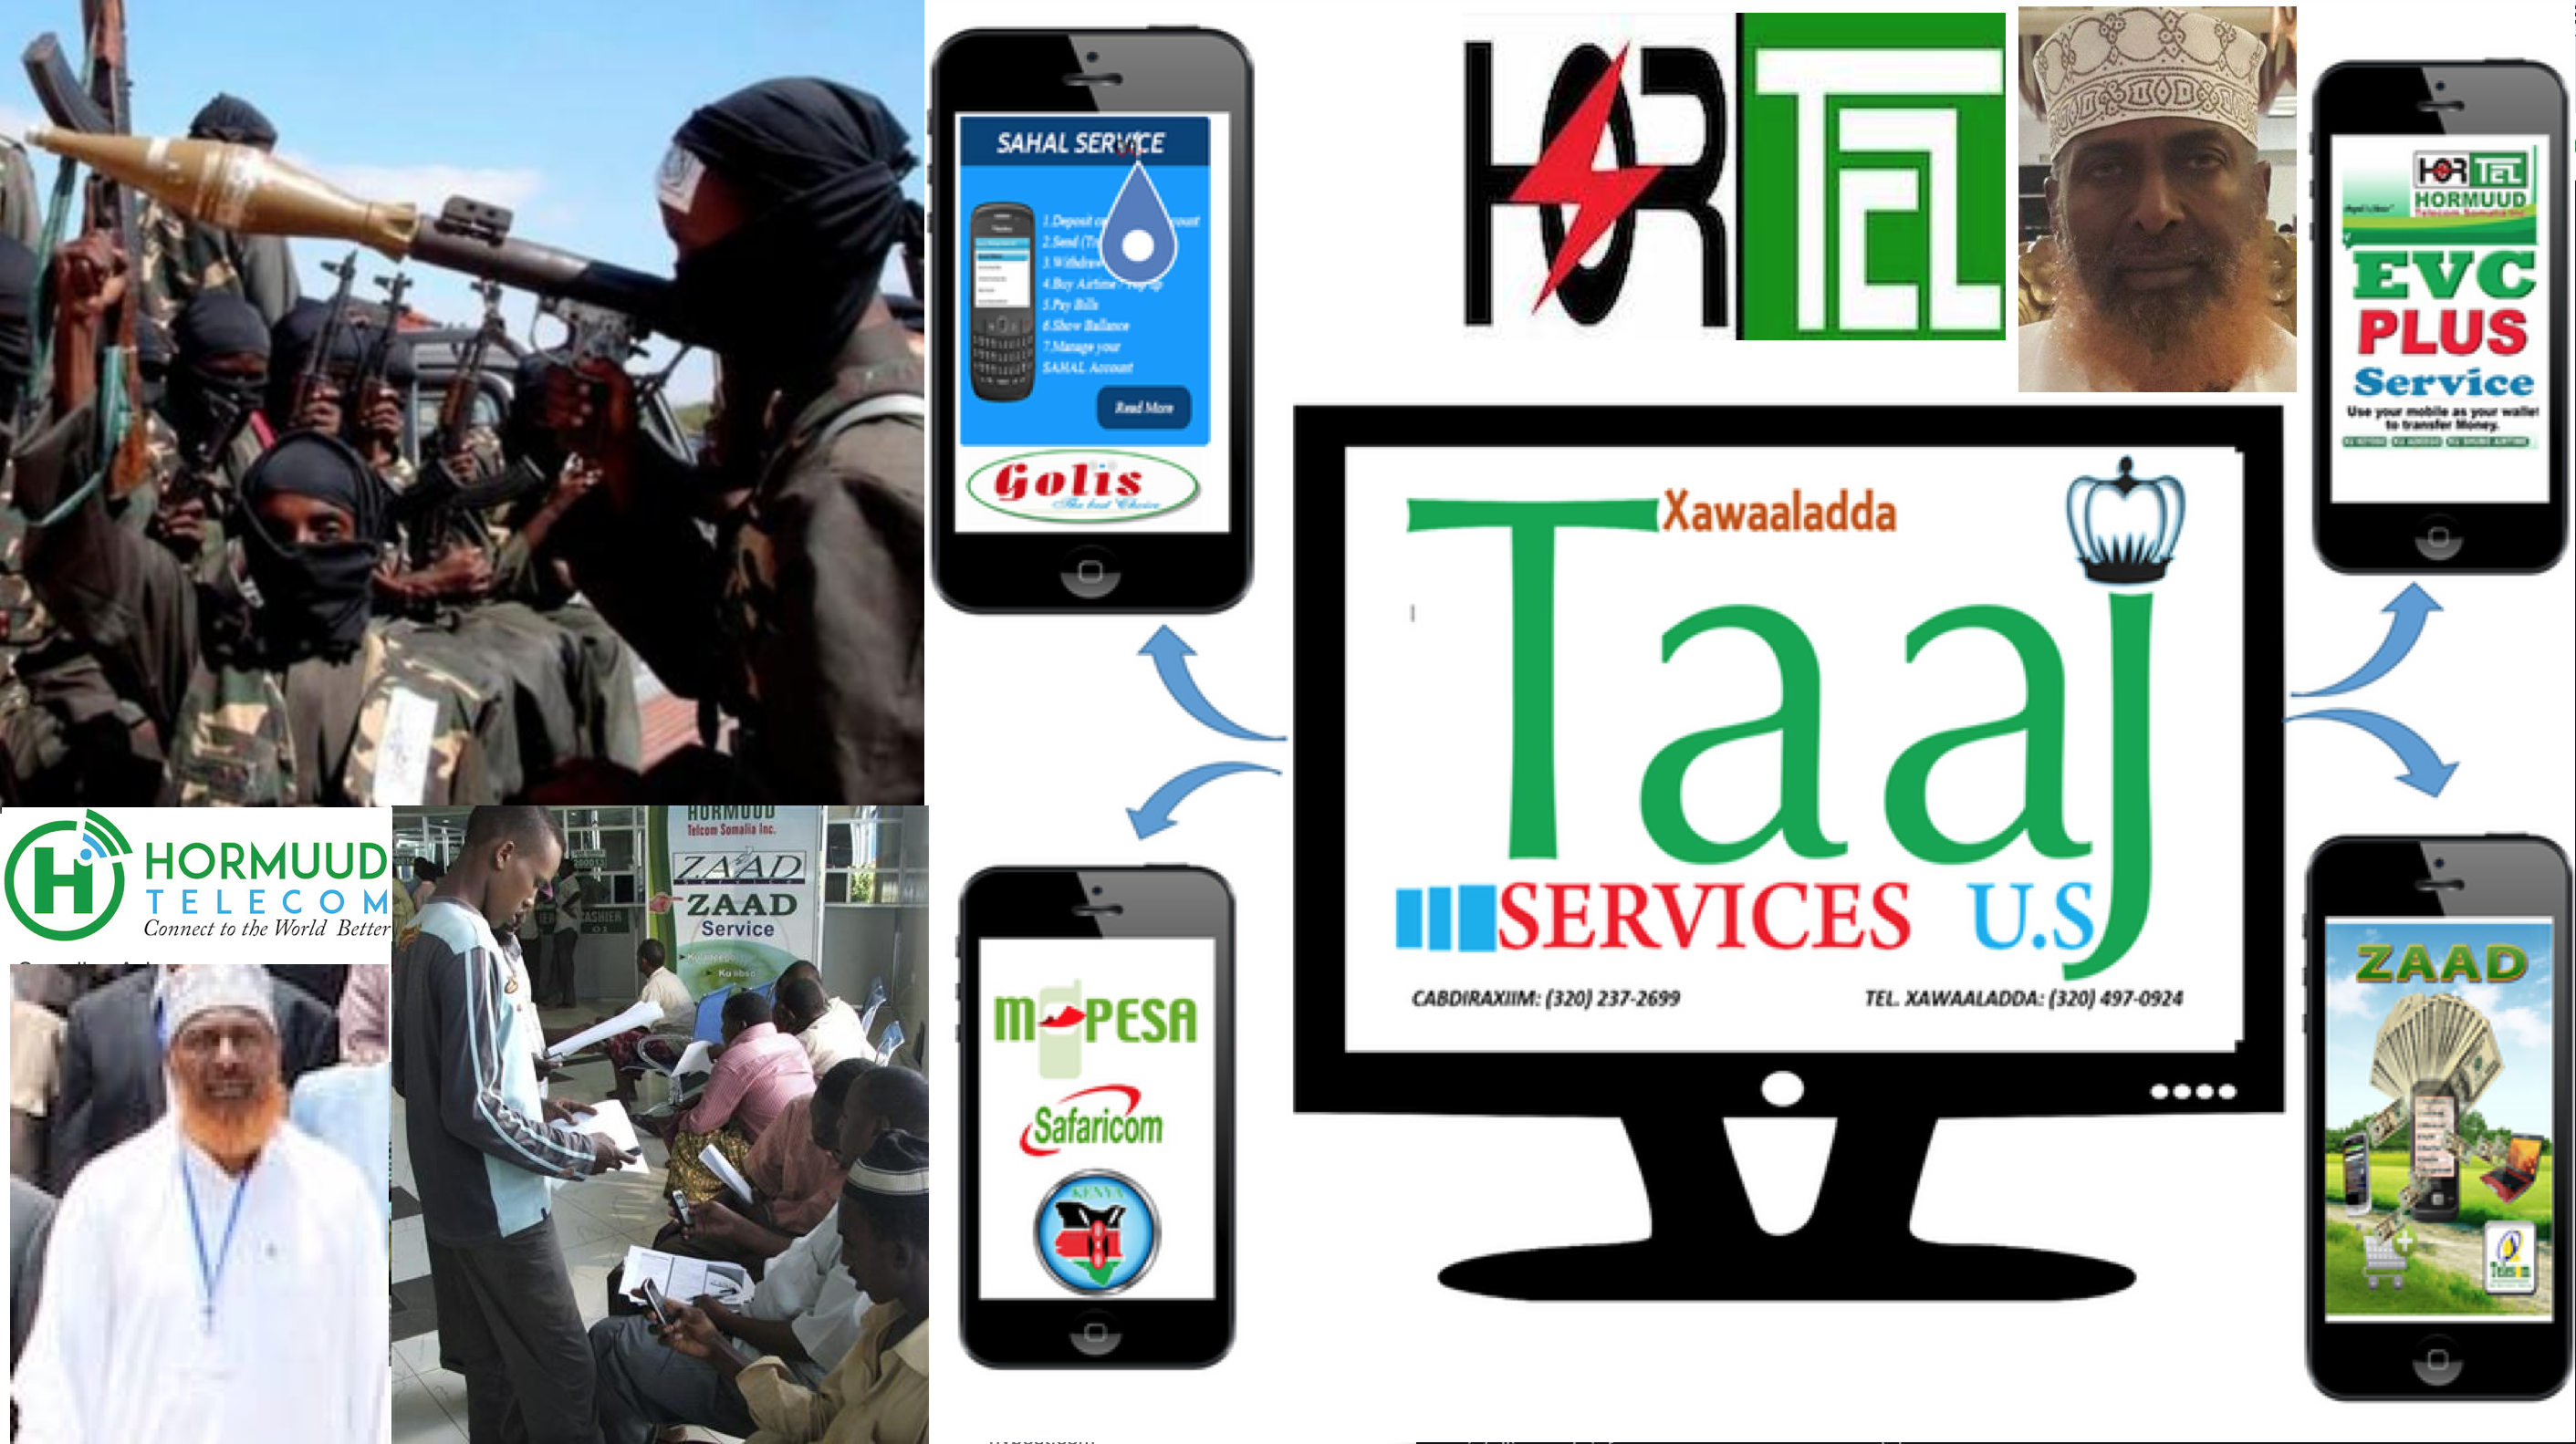 Somalia Mobile money: A major source of funding for Al-Shabaab-Hormuud Telecom